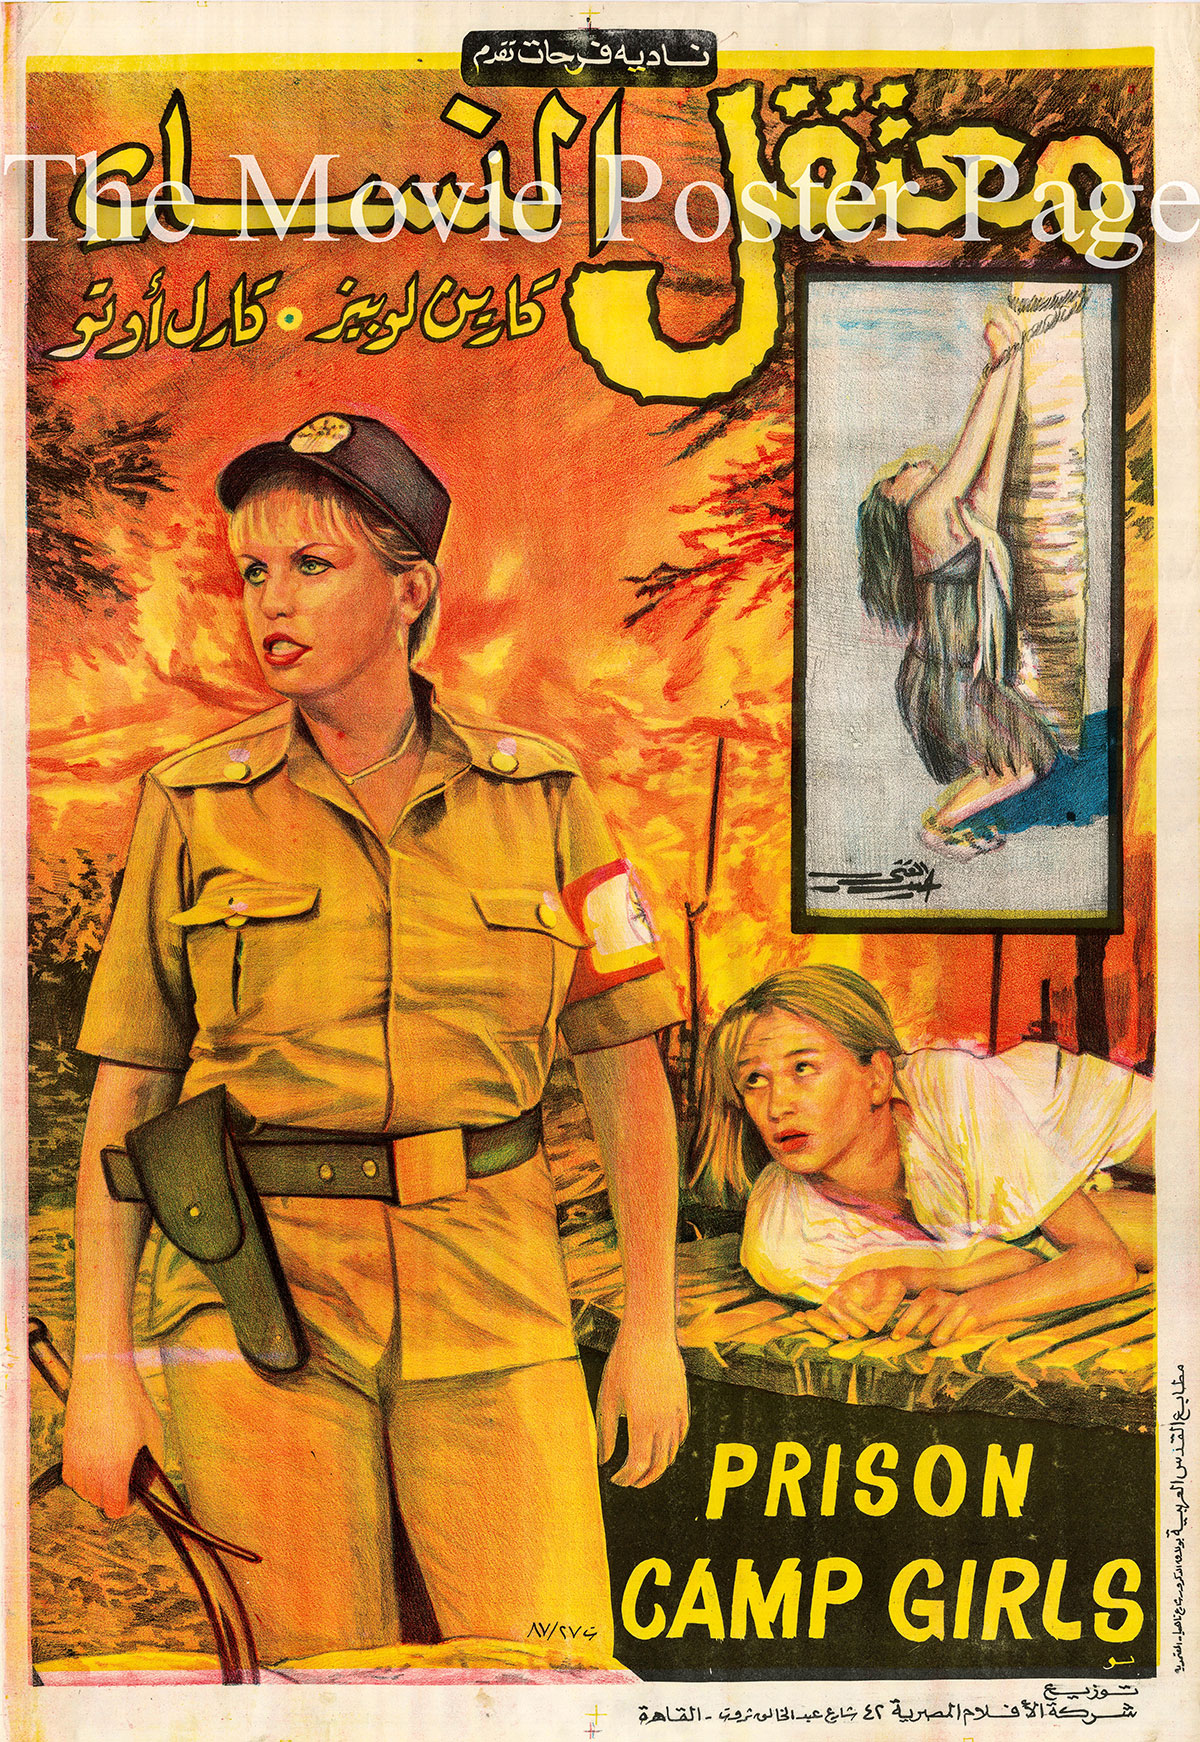 Pictured is an Egyptian one-sheet poster for a 1987 rerelease of the 1983 Kurt Raab film Prison Camp Girls starring Udo Kier as Hermano.